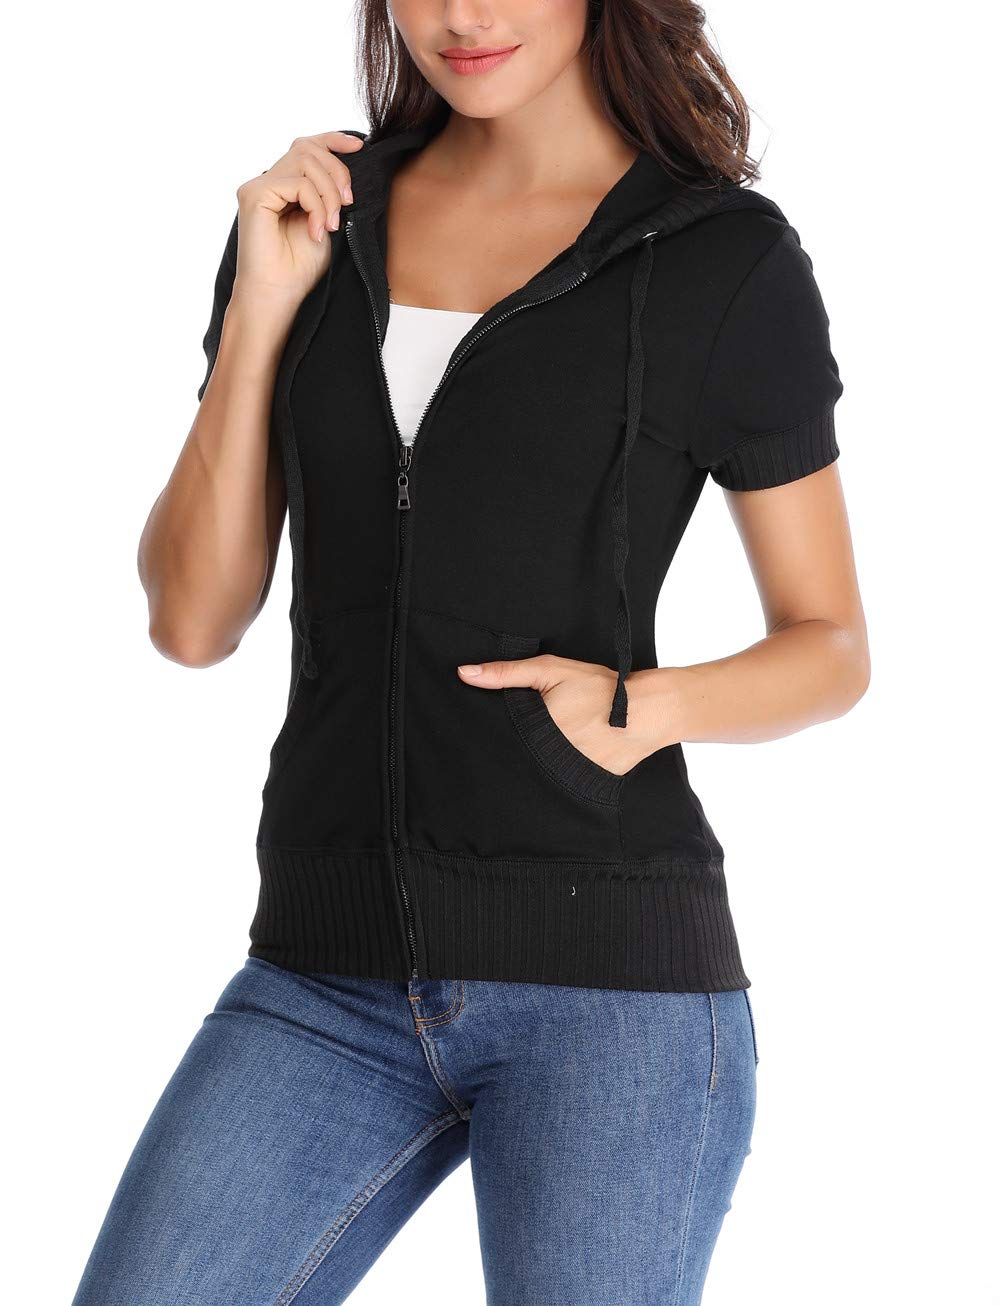 MISS MOLY Women's Round Neck Hoodie Zip Up Short Sleeve Jacket w 2 Patch Pocket